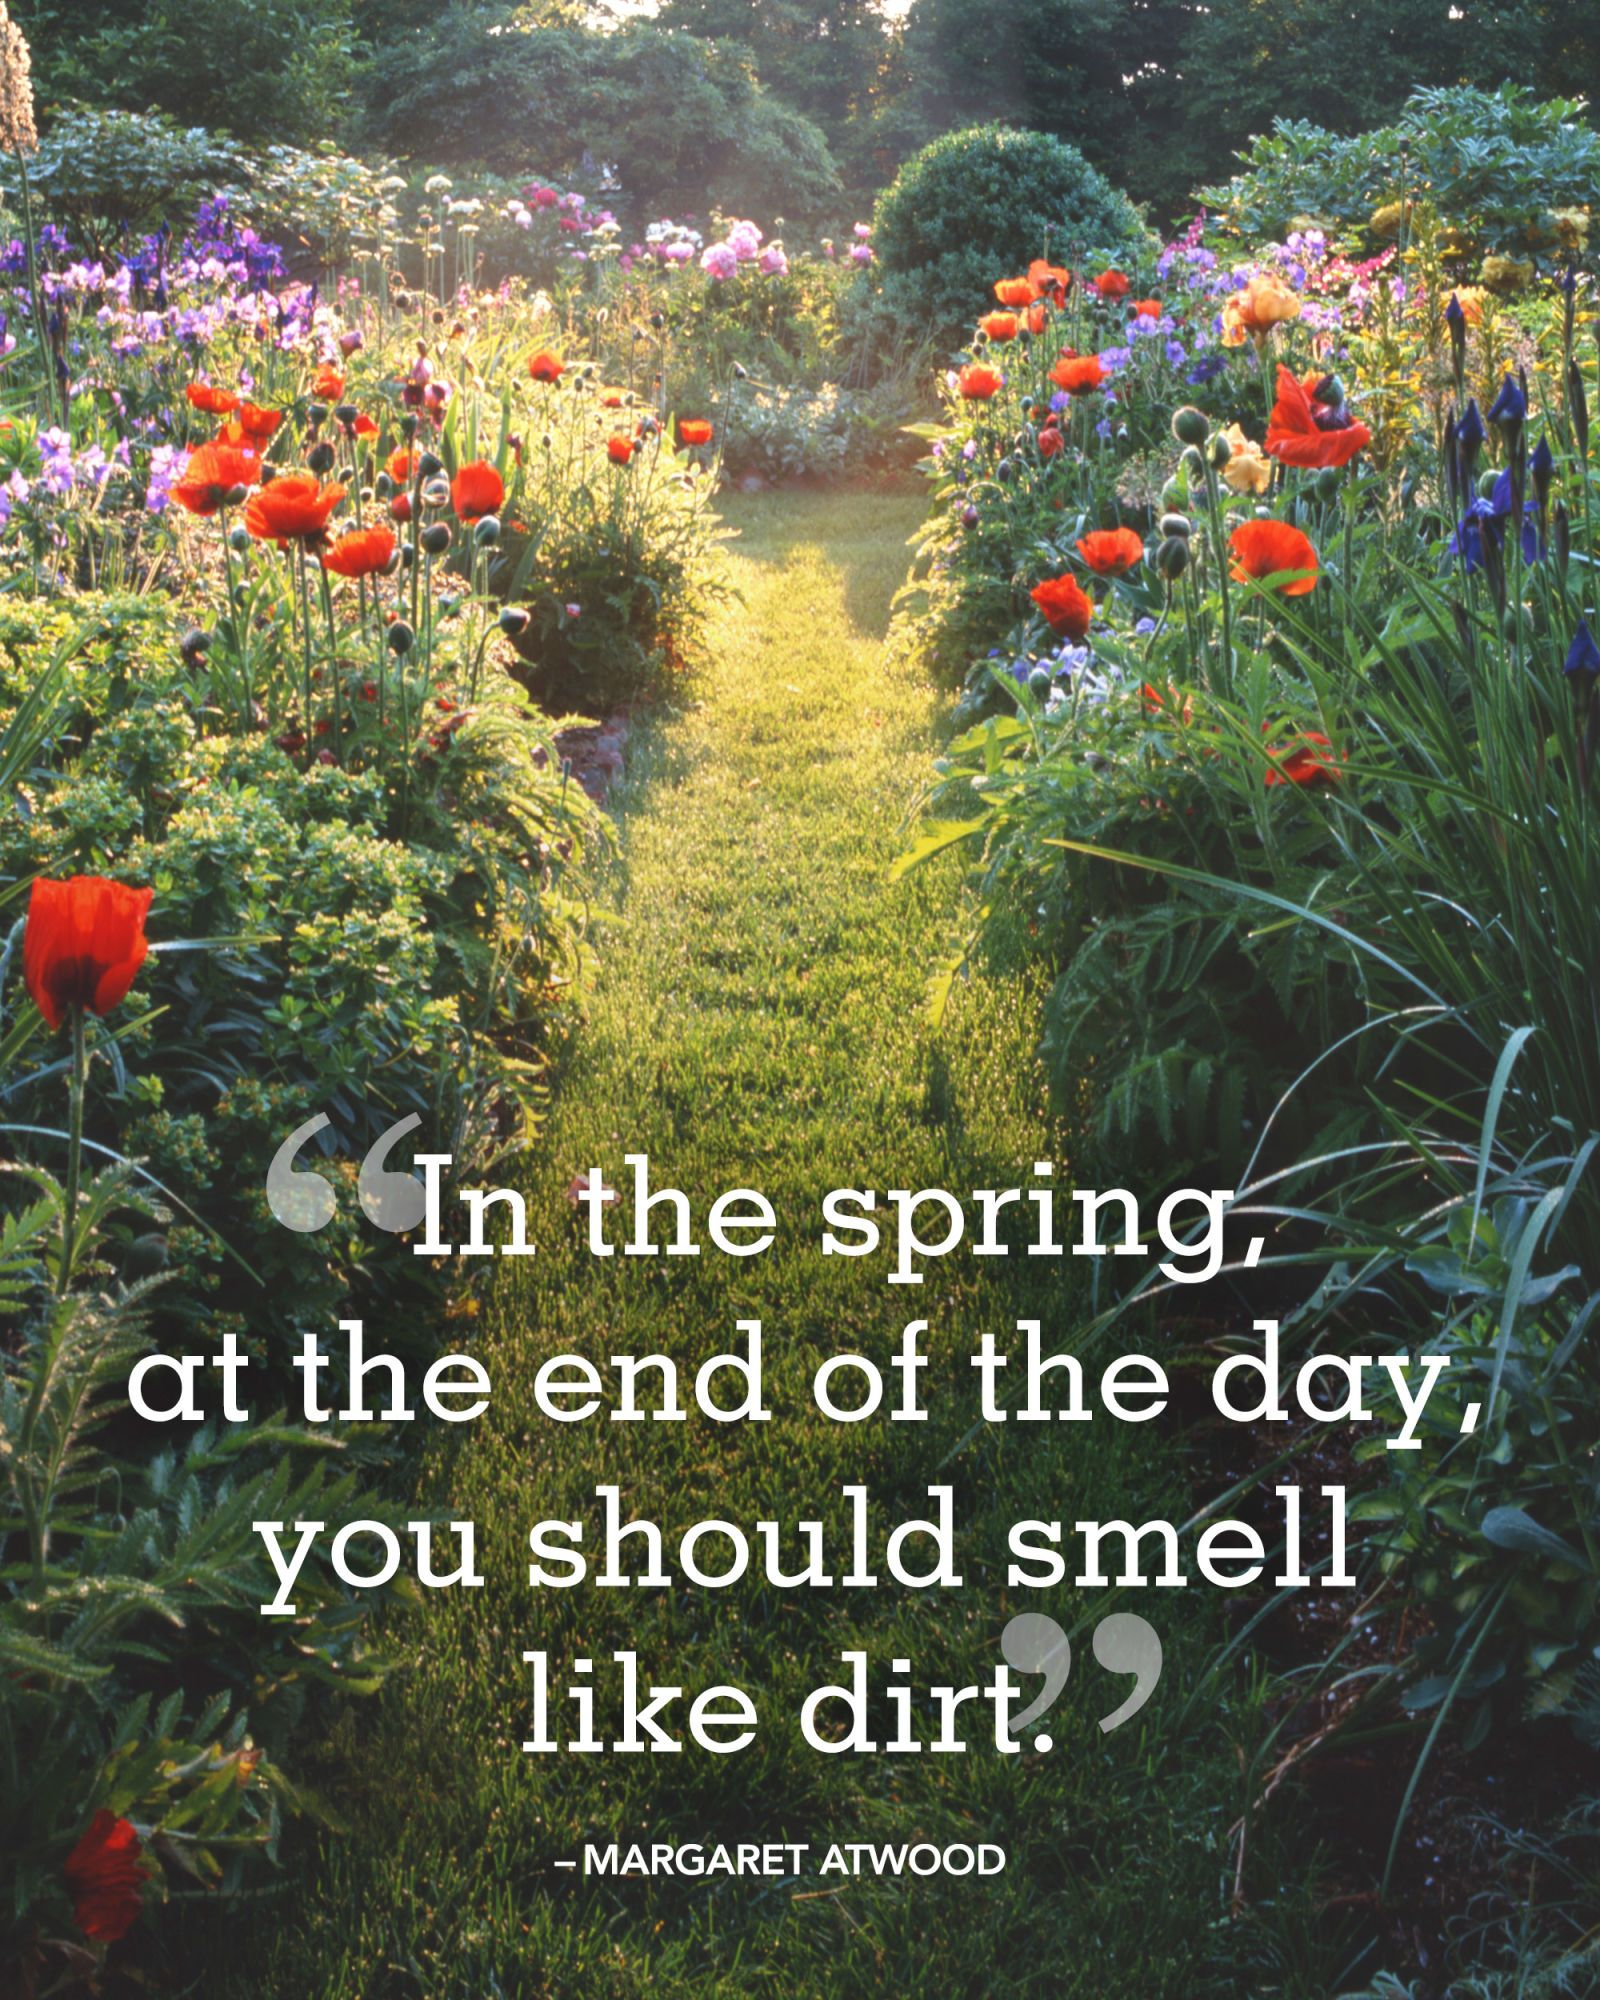 Get in the Springtime Spirit With These Uplifting Quotes